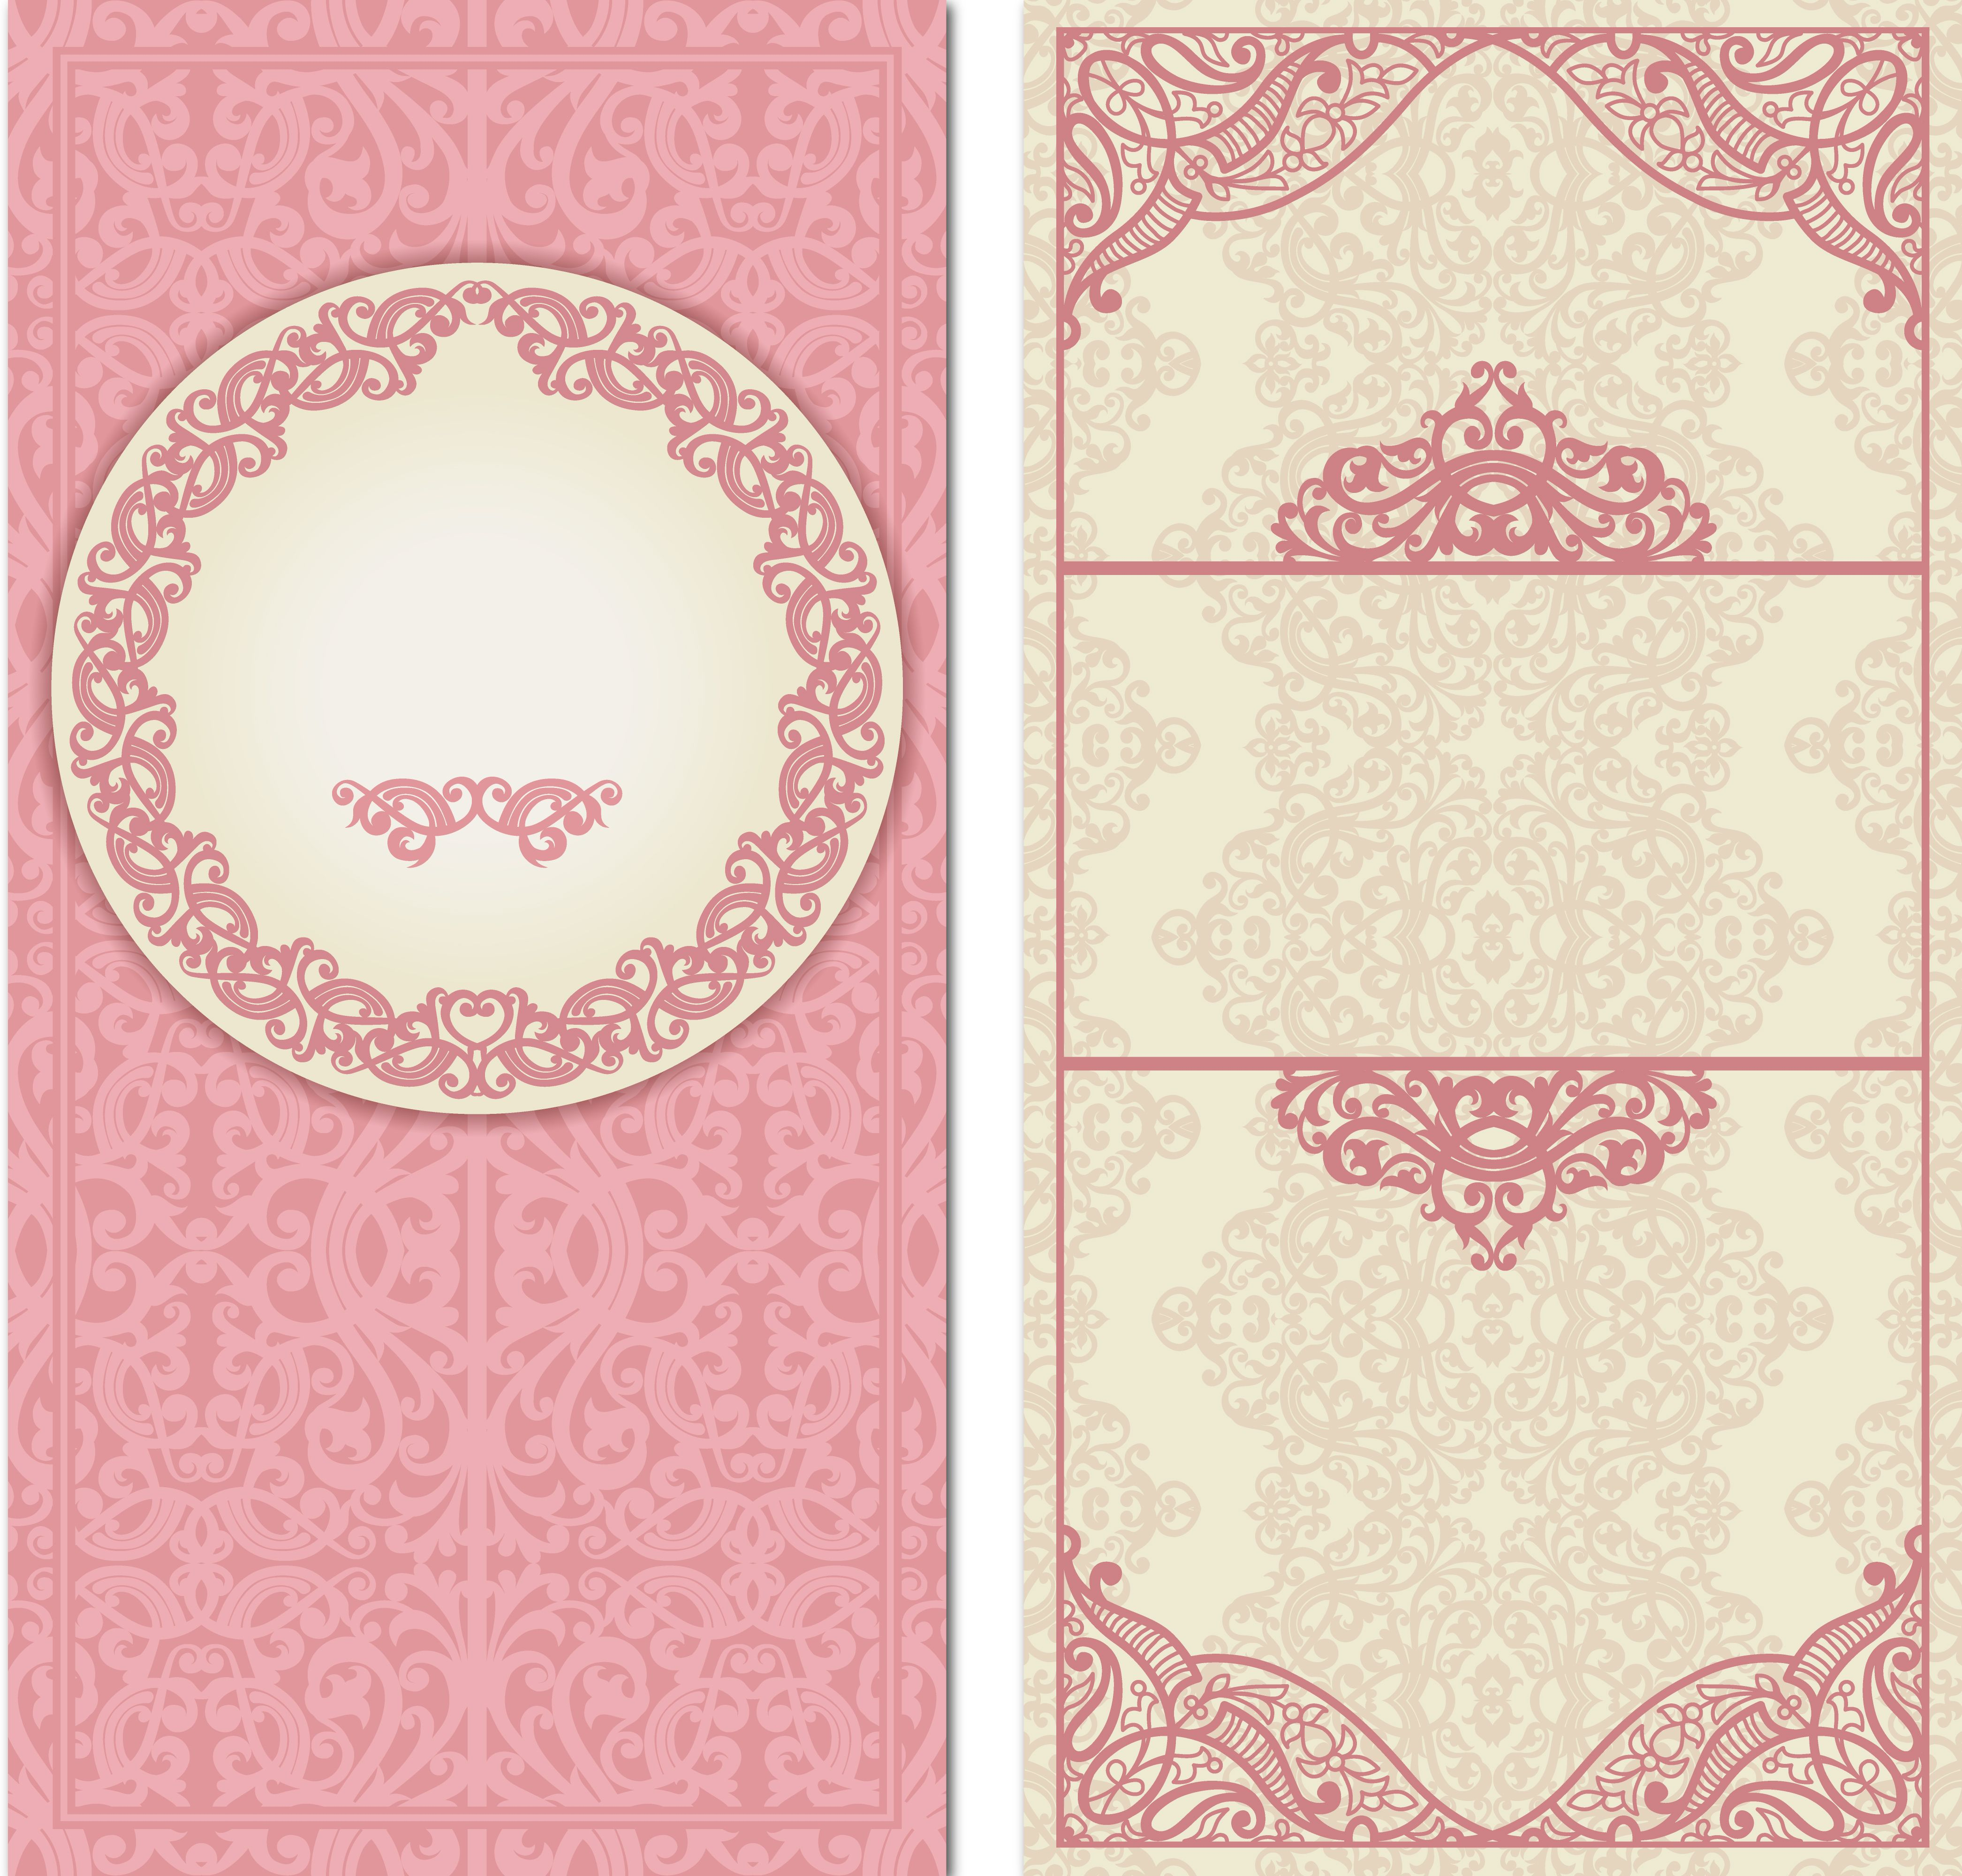 pink wedding invitation card vector background material